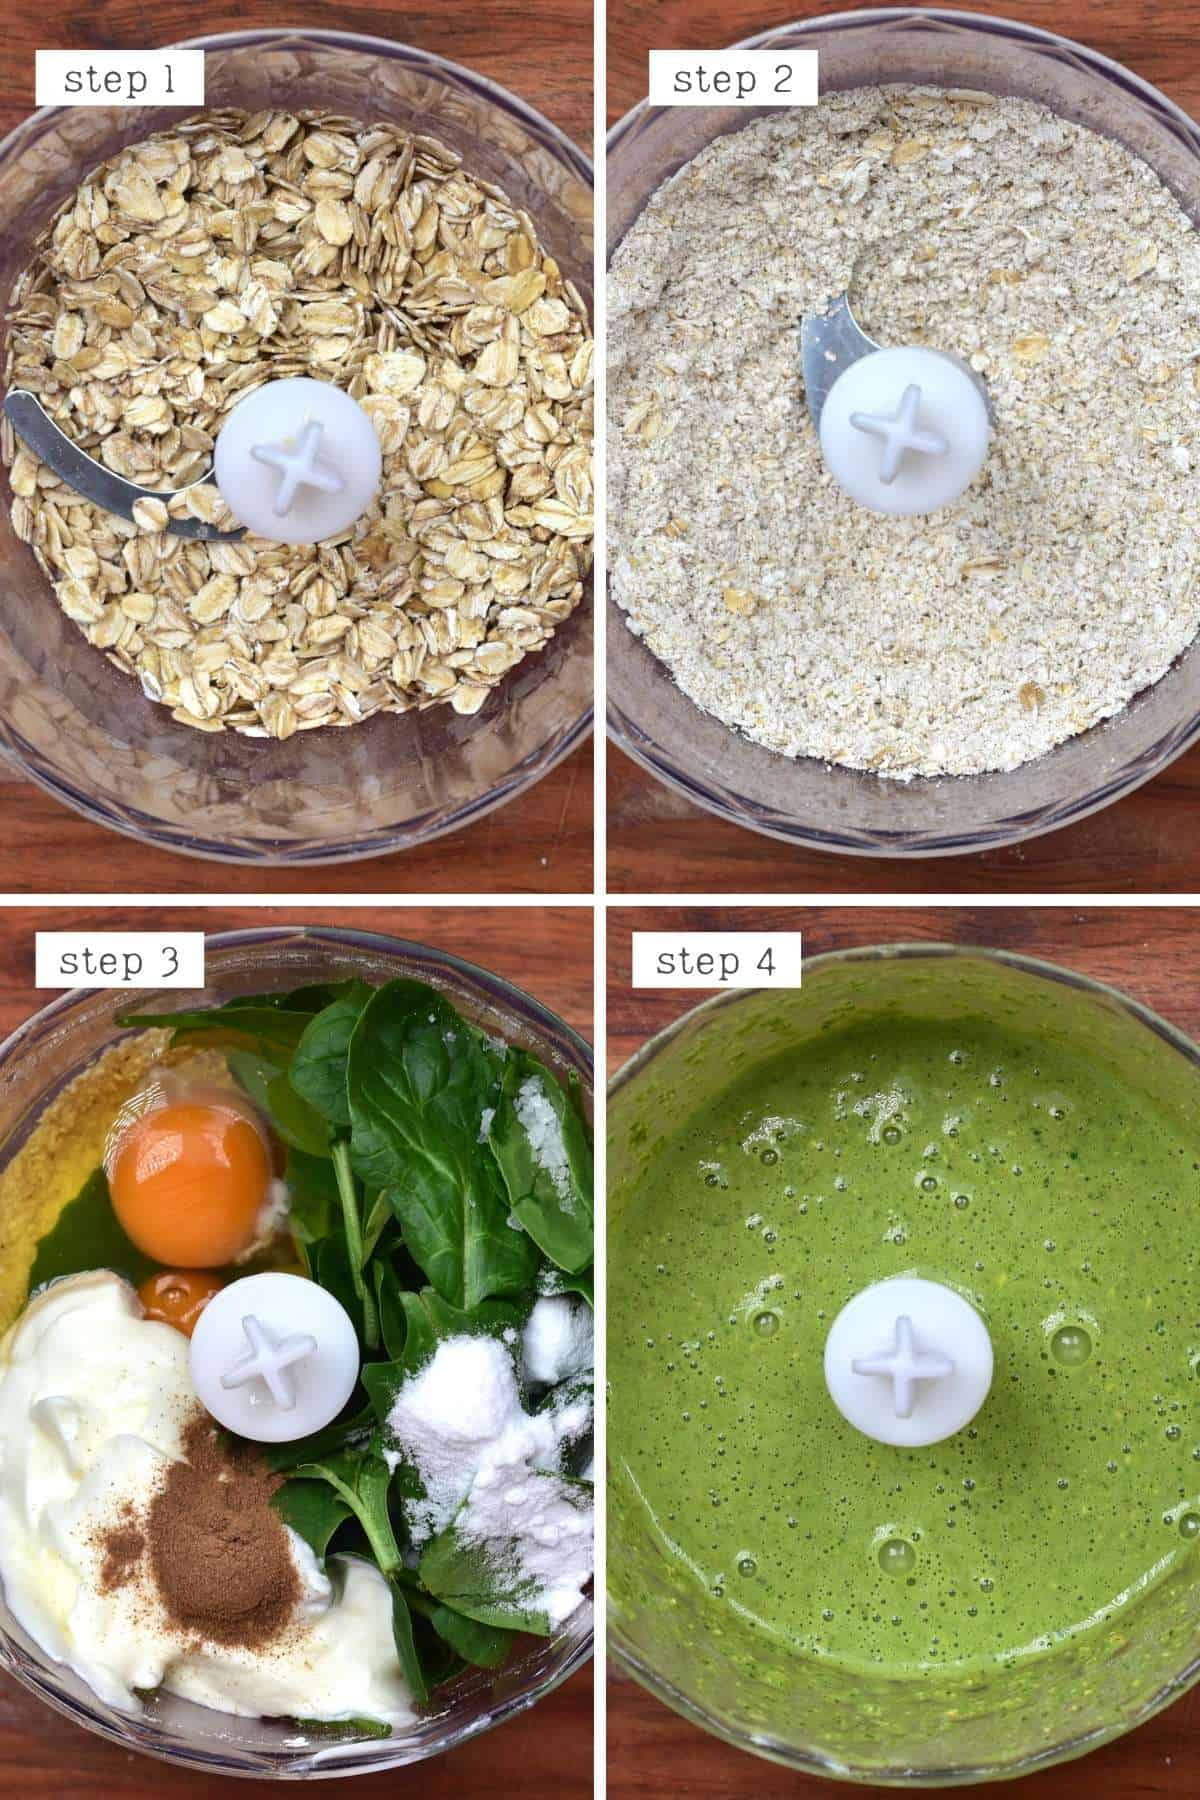 Steps for making spinach pancakes